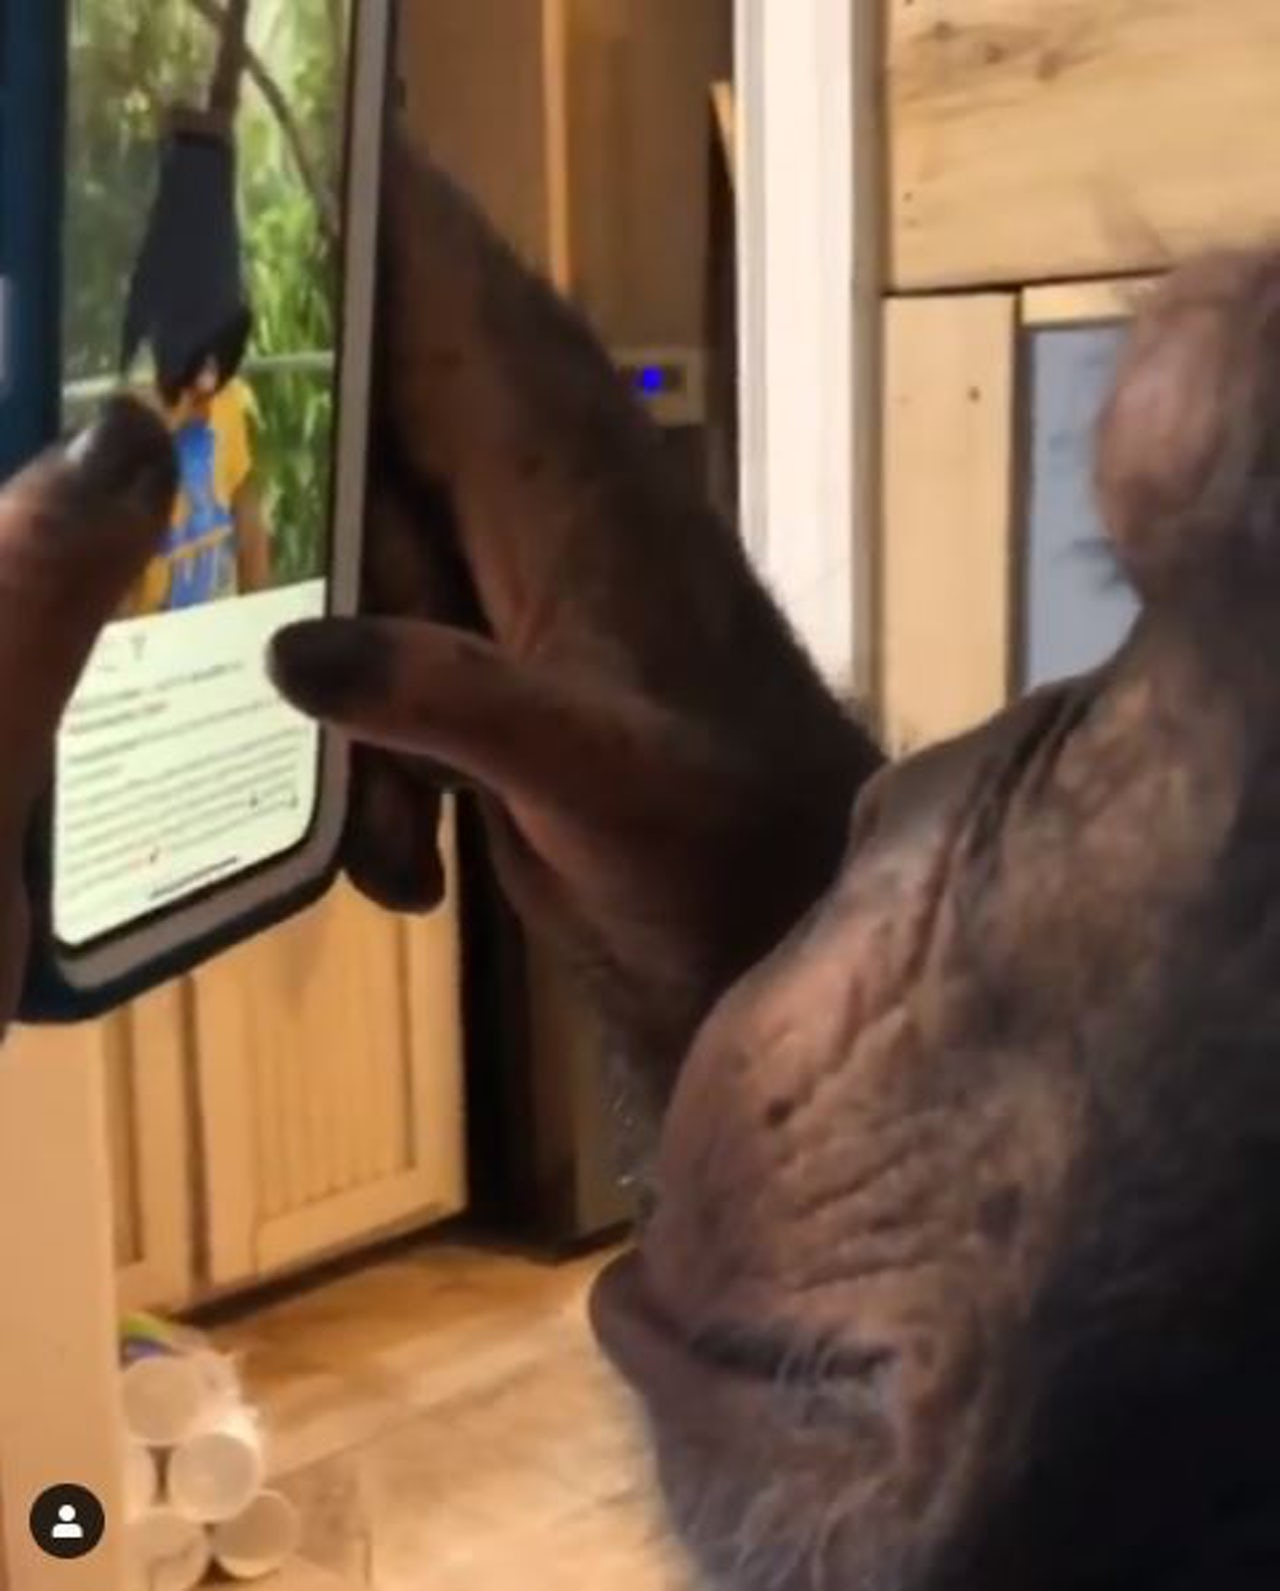 Watching this chimp use Instagram like a bored teen makes me feel bad